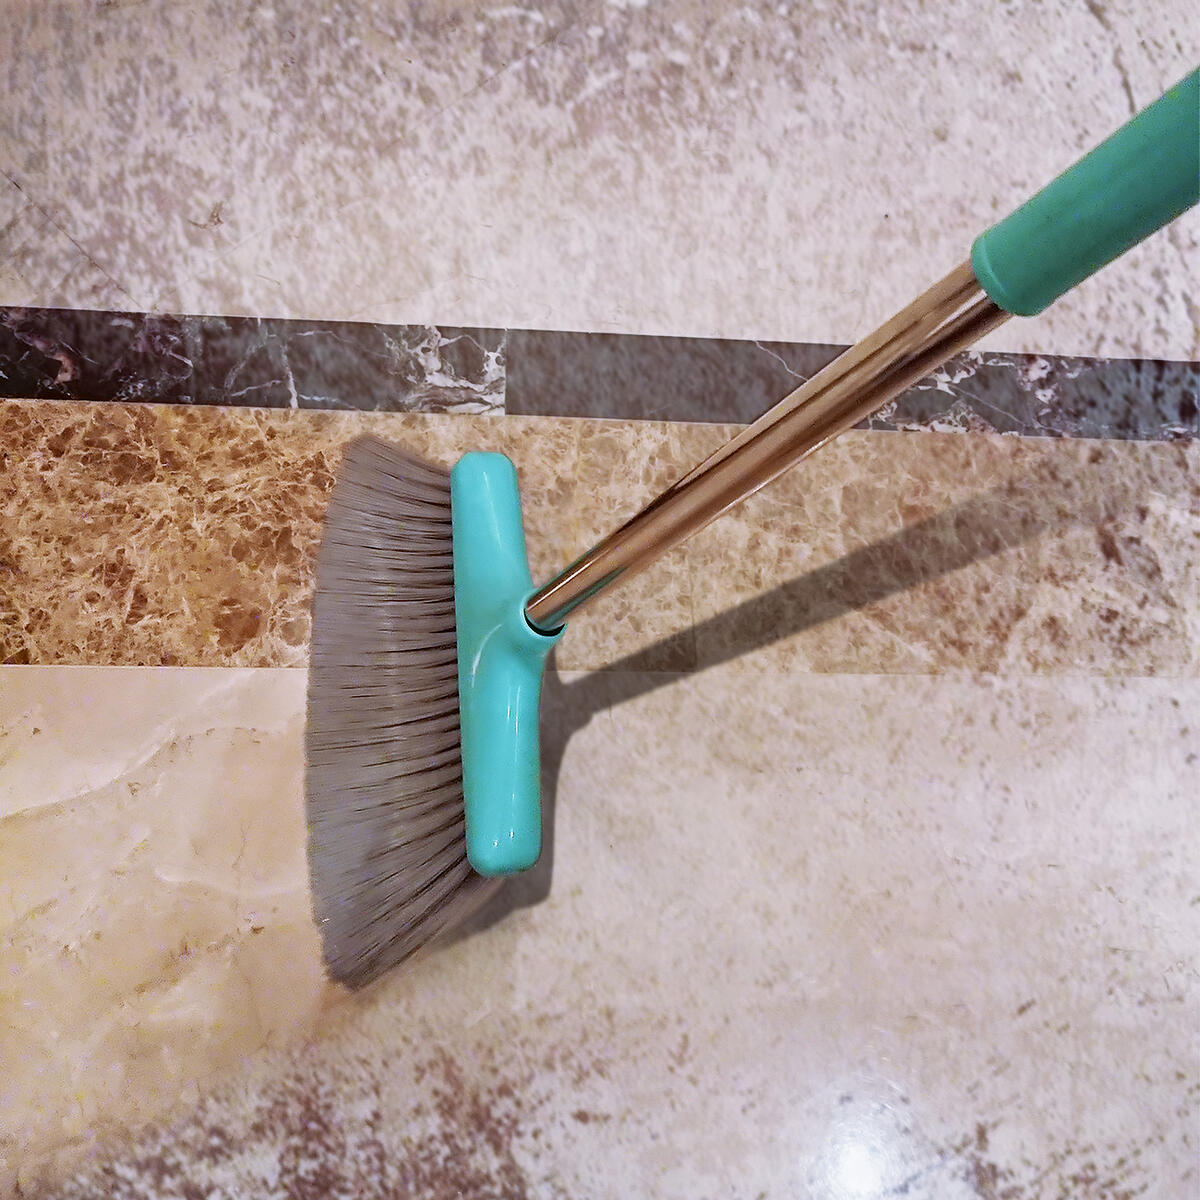 Broom and Dustpan Set Lightweight Upright Lobby Broom and Dust Pan Combo with Long Handle Outdoor Indoor for Home Kitchen Room Office